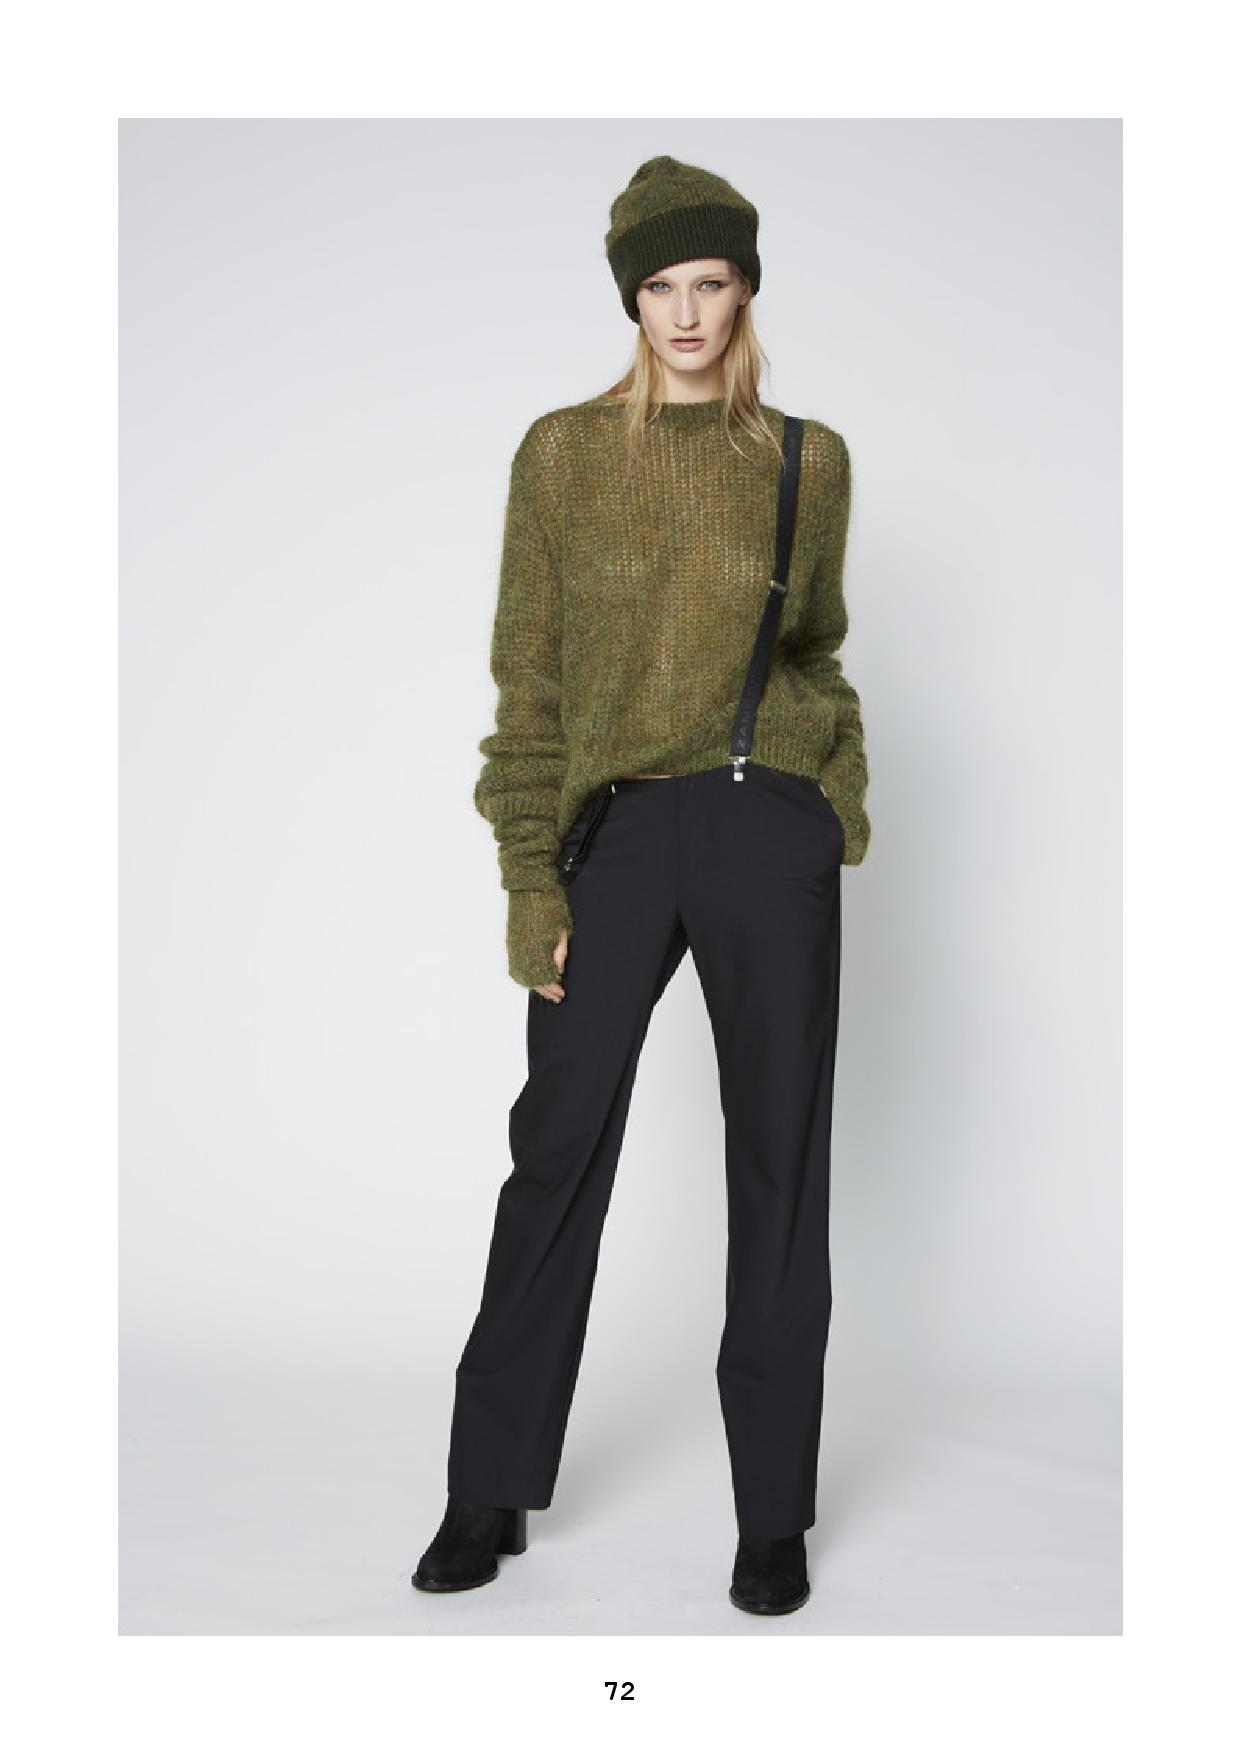 aw17 women s keypieces-page-073